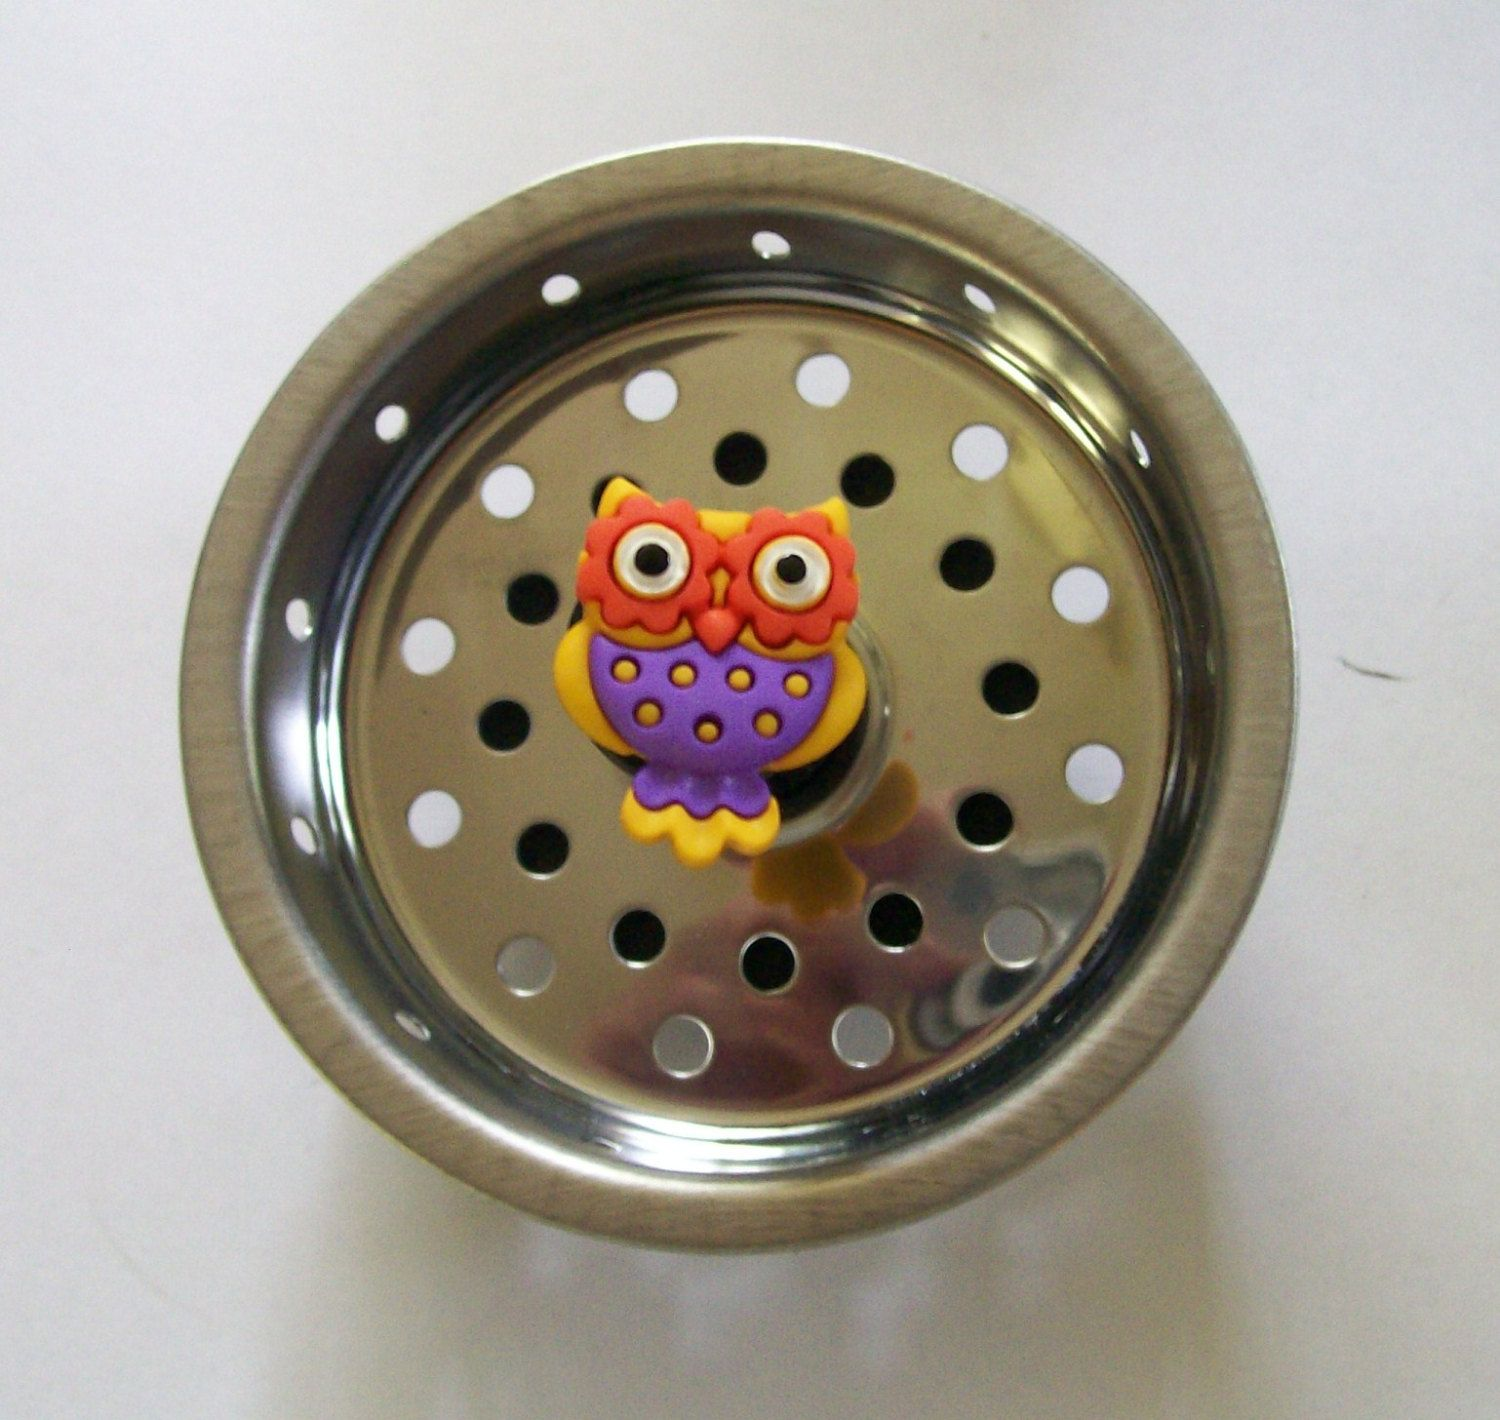 Colorful owl kitchen sink strainer basket sink drain plug stopper owl sinks and sink strainer - Decorative kitchen sink strainers ...